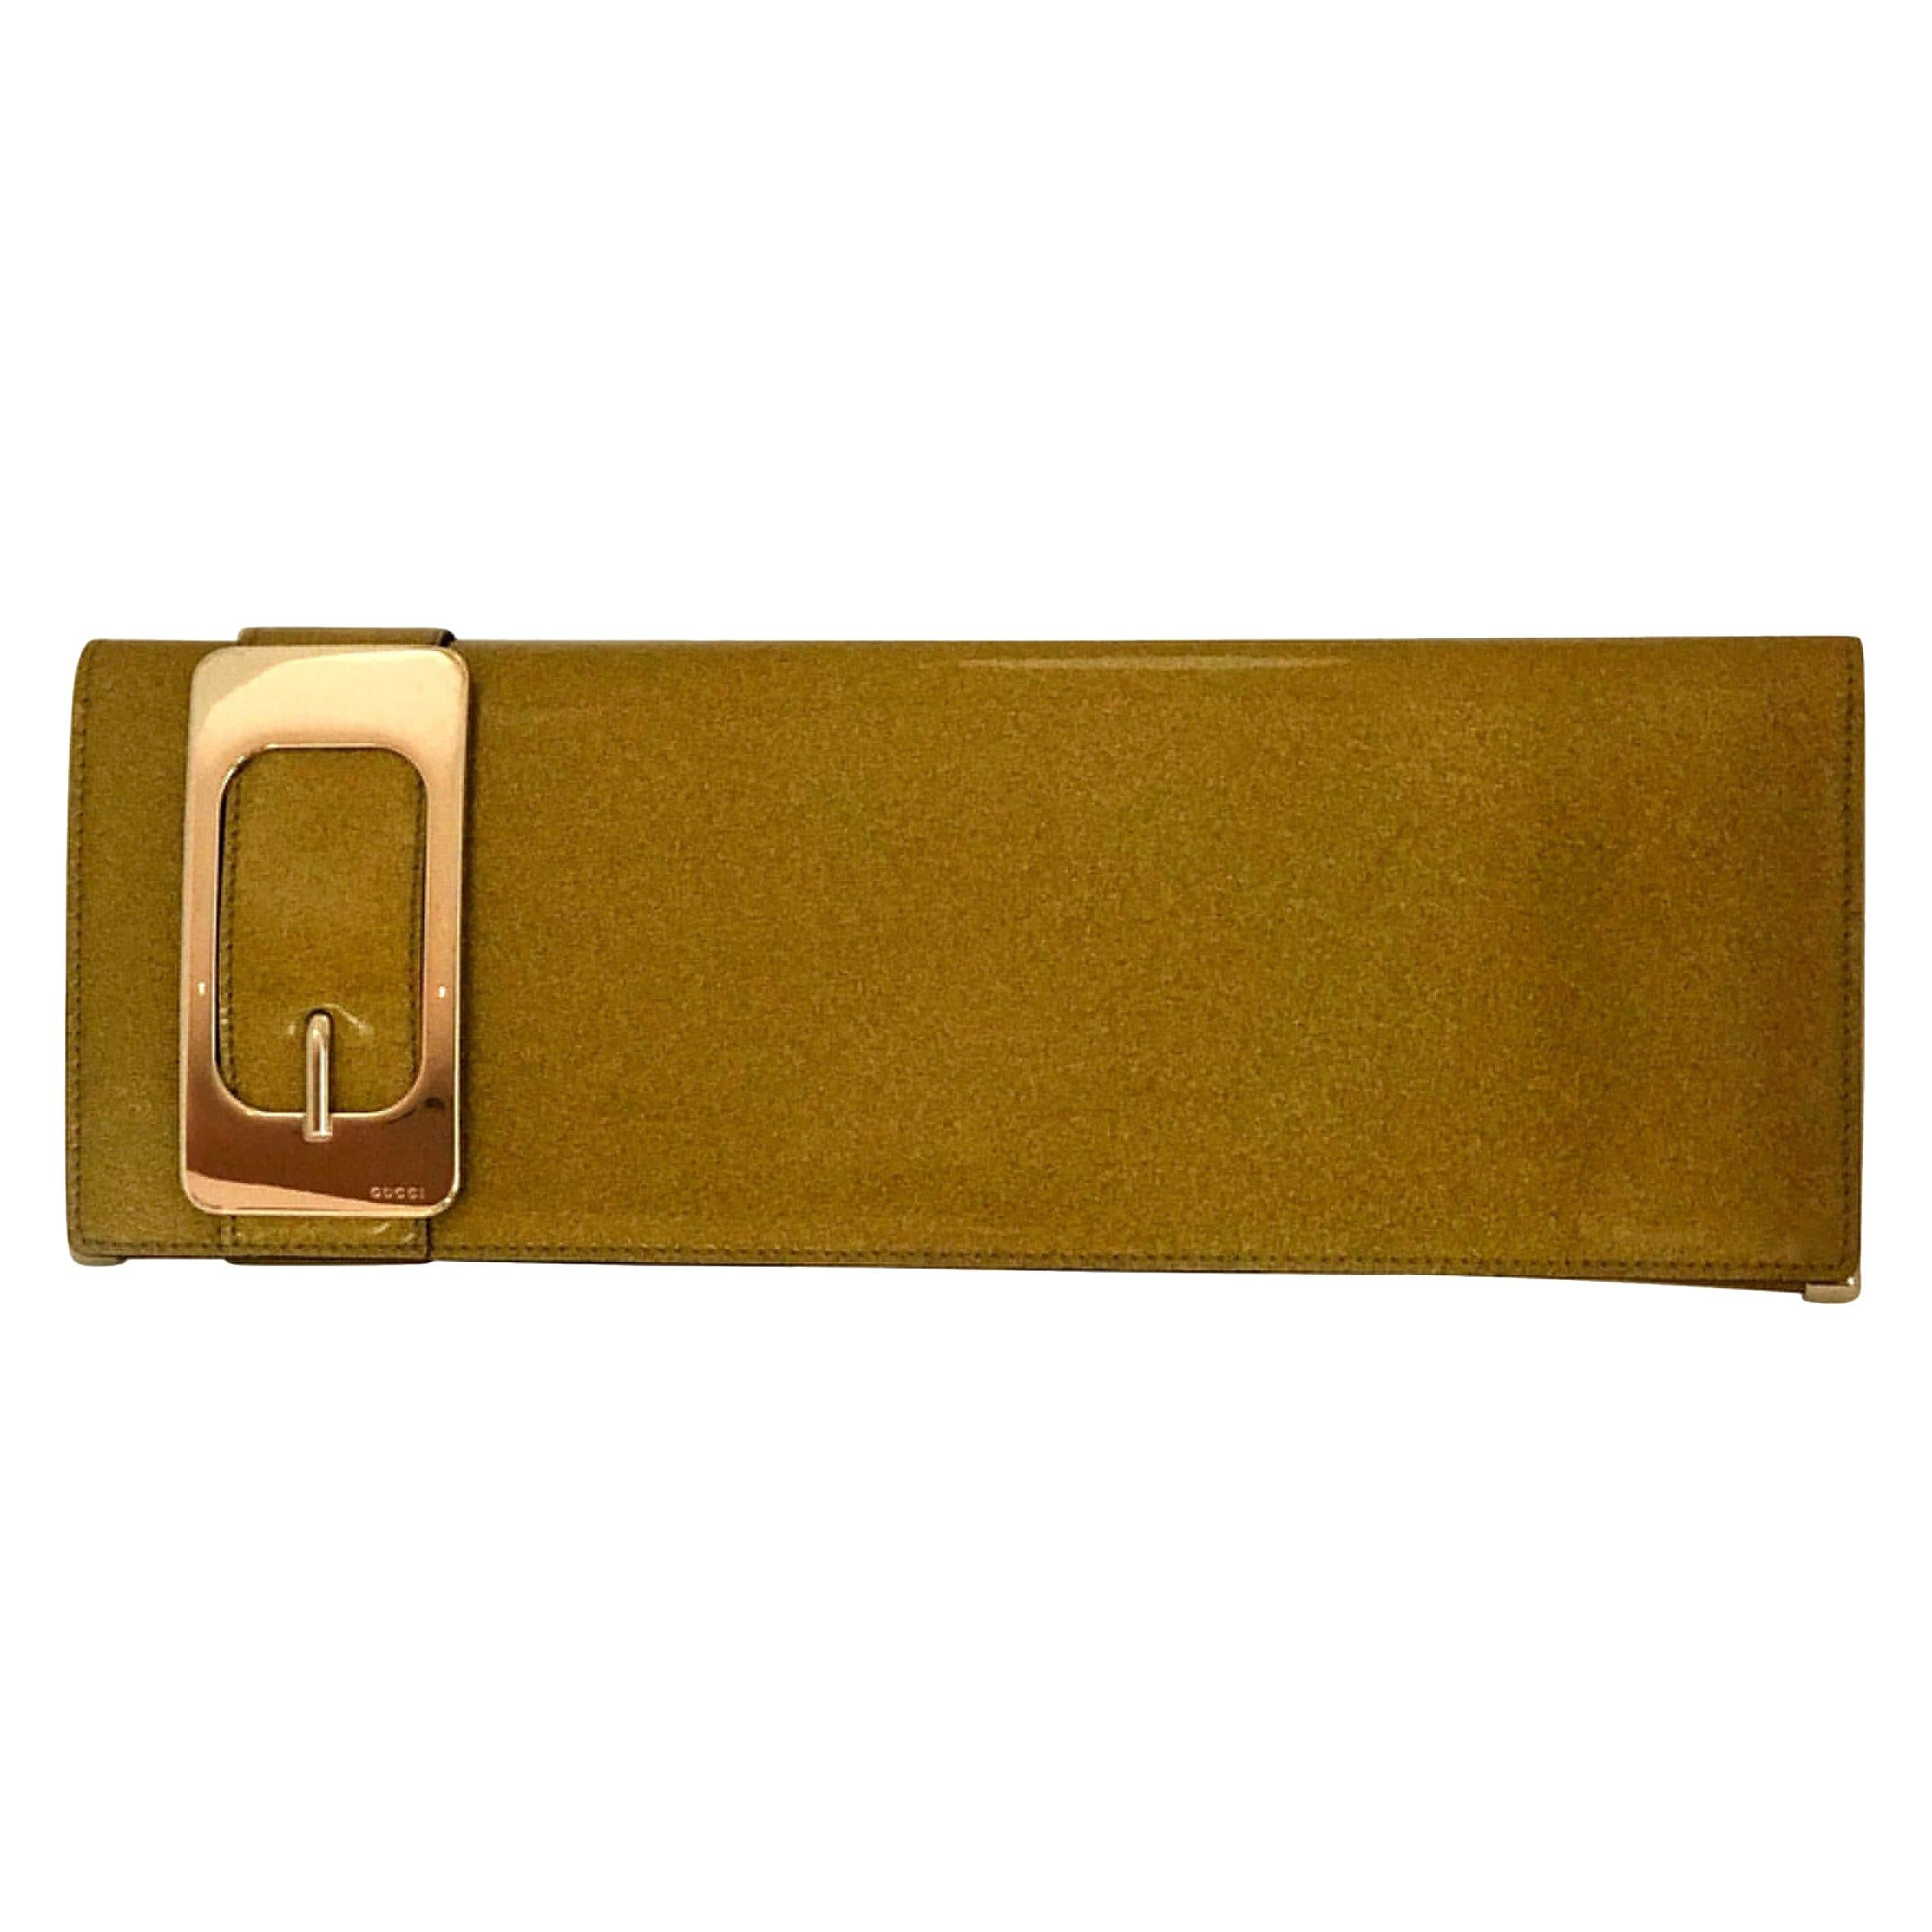 Gucci Iridescent Gold Patent Leather Elongated Clutch with Gold Metal Accents